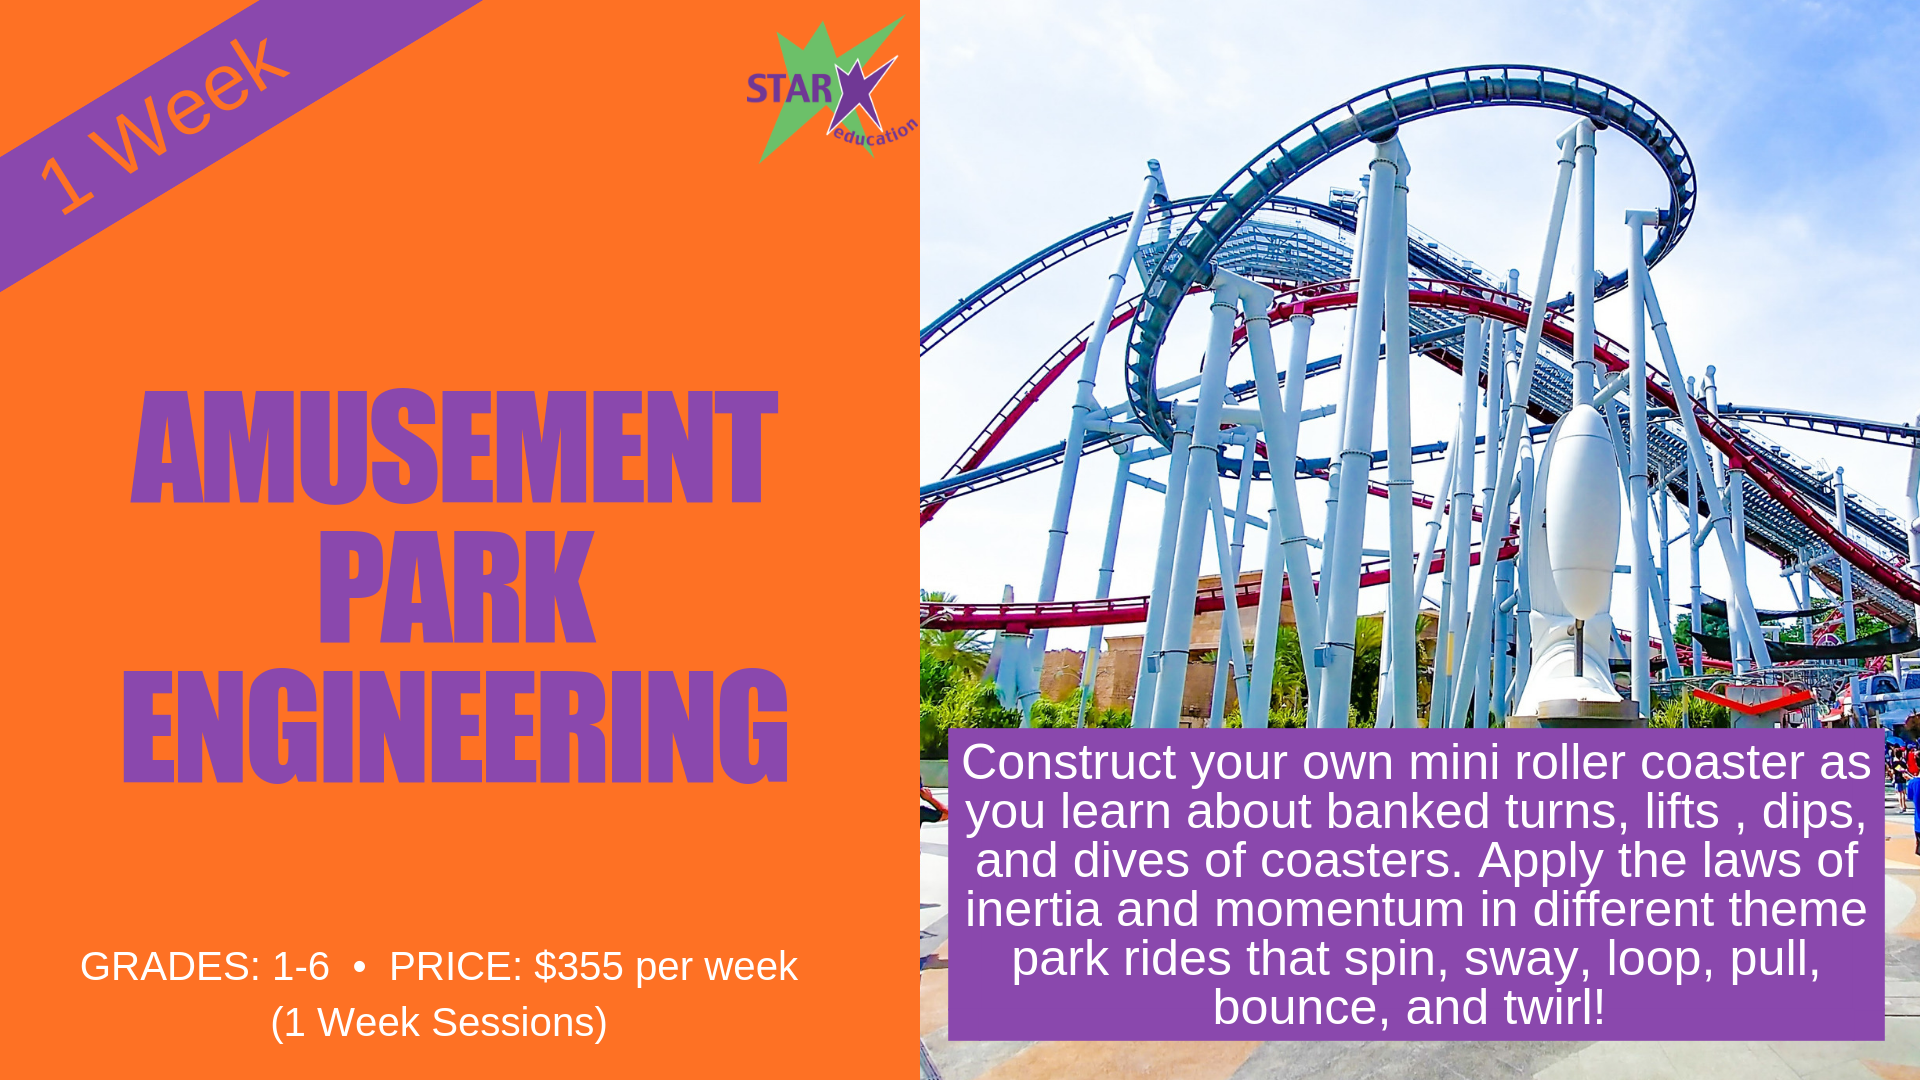 Amusement Park Engineering (2).png